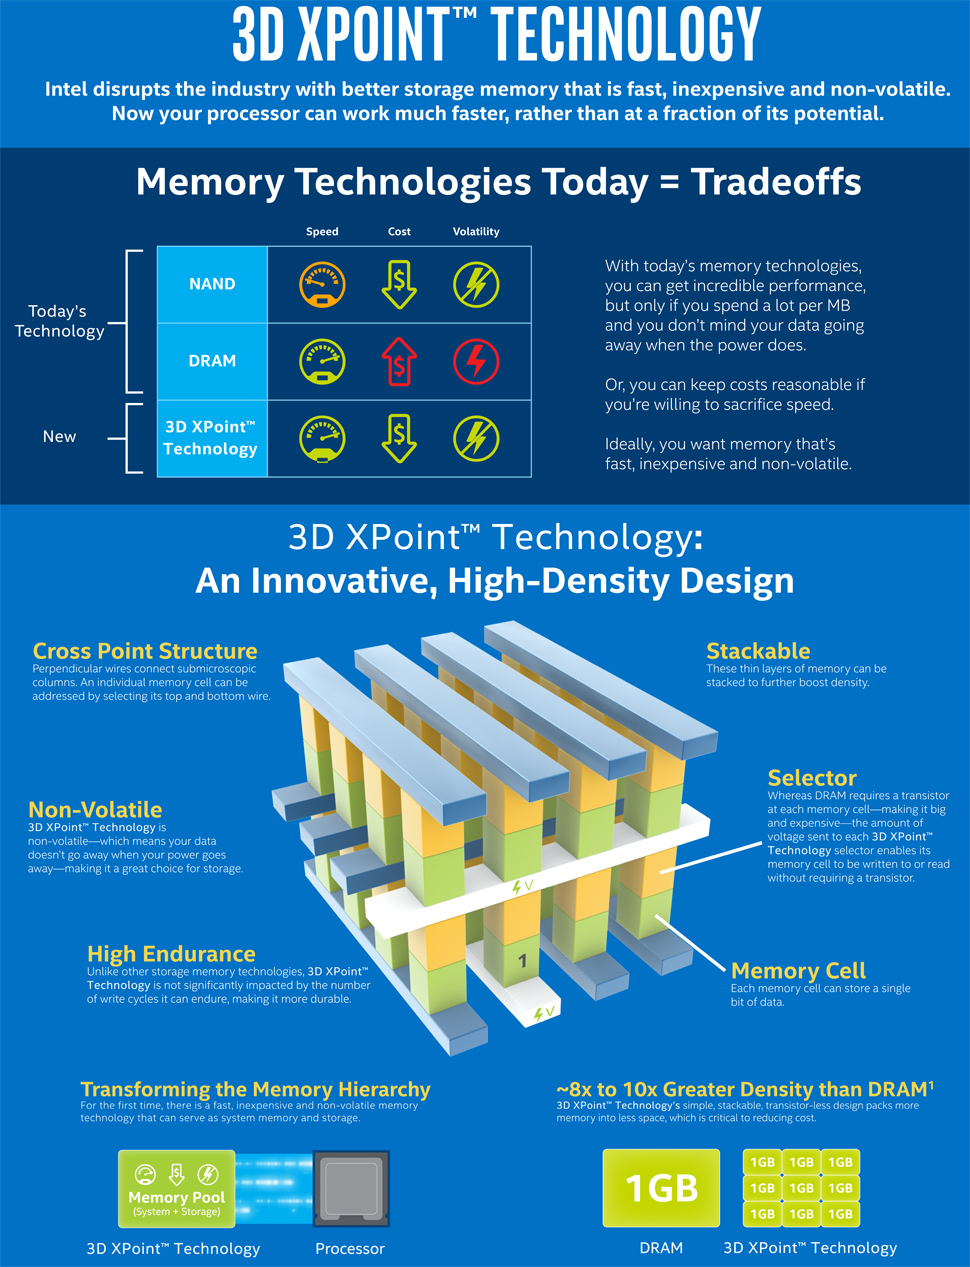 3dxpoint memory technology 2015 future timeline